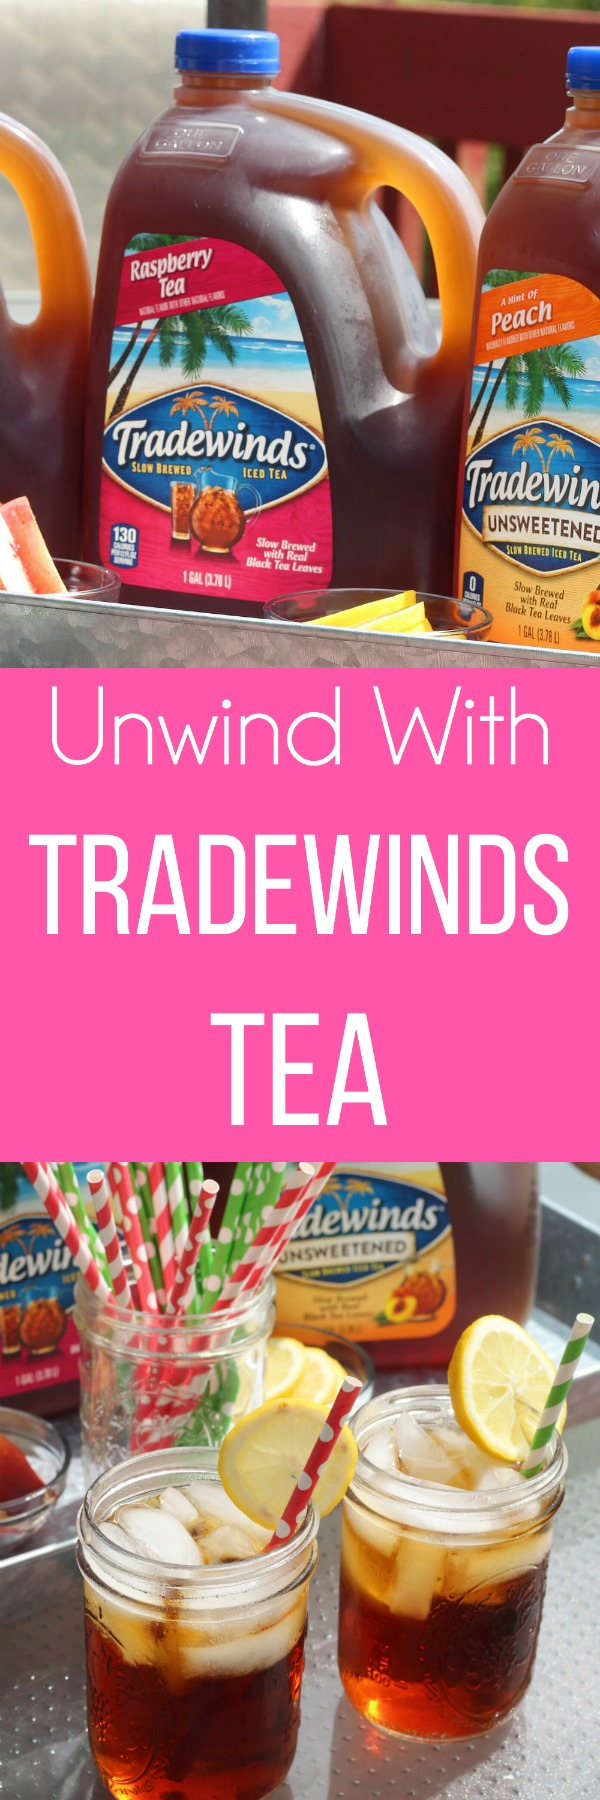 Enjoy Tradewinds Tea anytime! Slow brewed with tea leaves, it comes in a variety of flavors and sizes! YUM! via @DashofEvans #MomentsToSavor #TradewindsTea